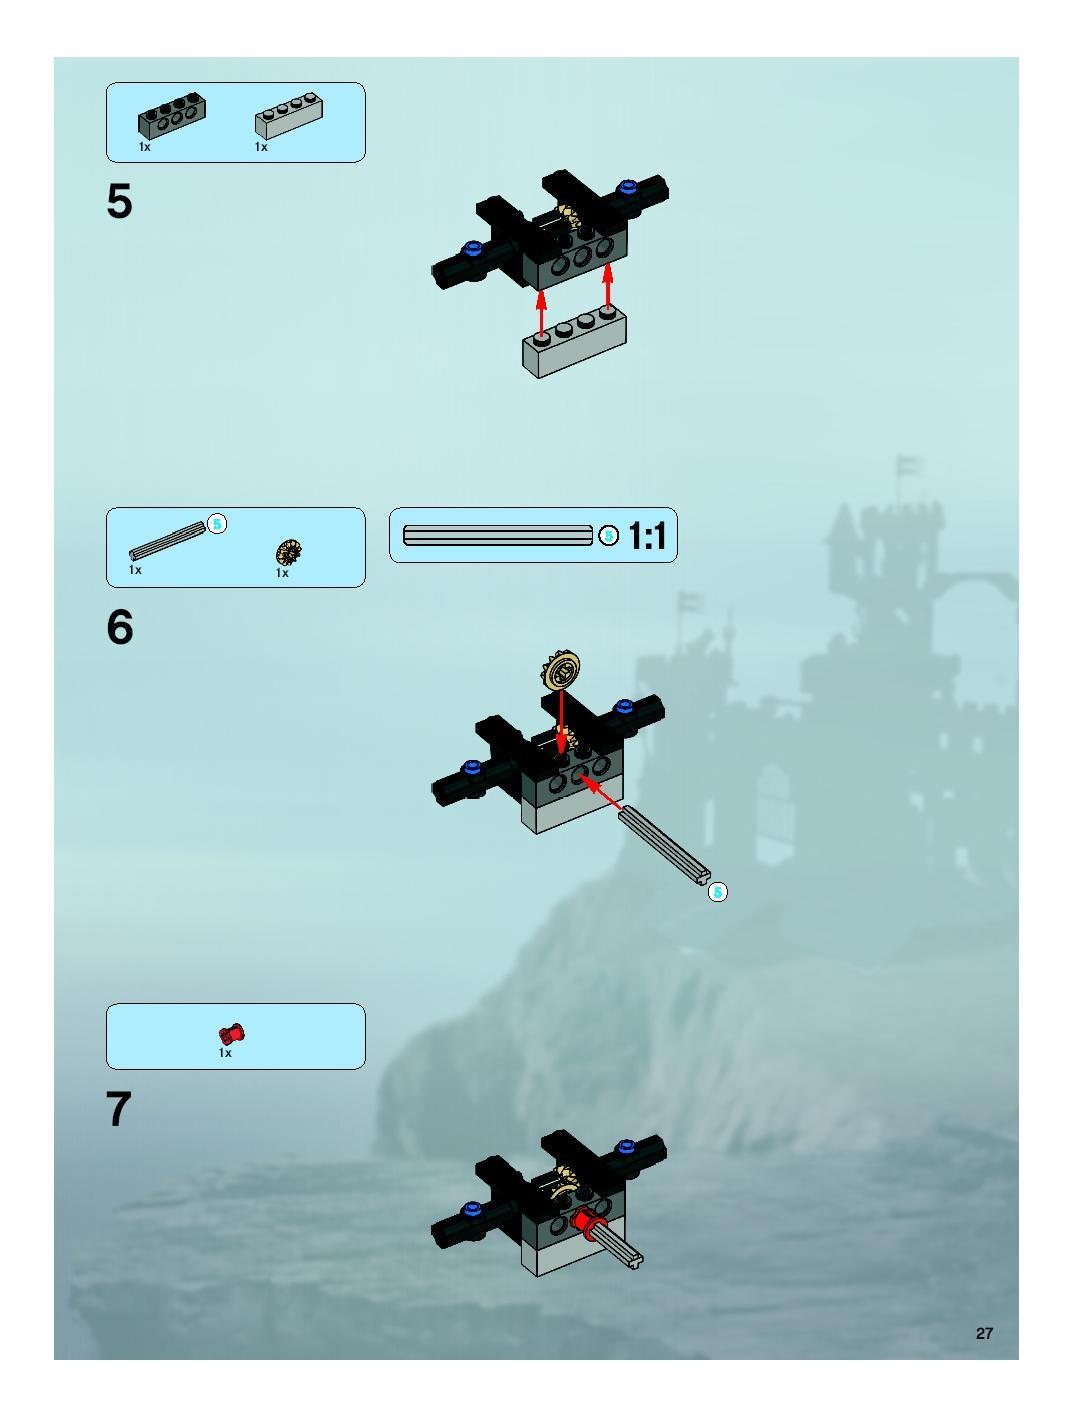 Vgigjtszs 7079 Drawbridge Defense Kockagyr Lego Blog A Felvonhd Mechanik Is Ebben Rszben Pl Meg